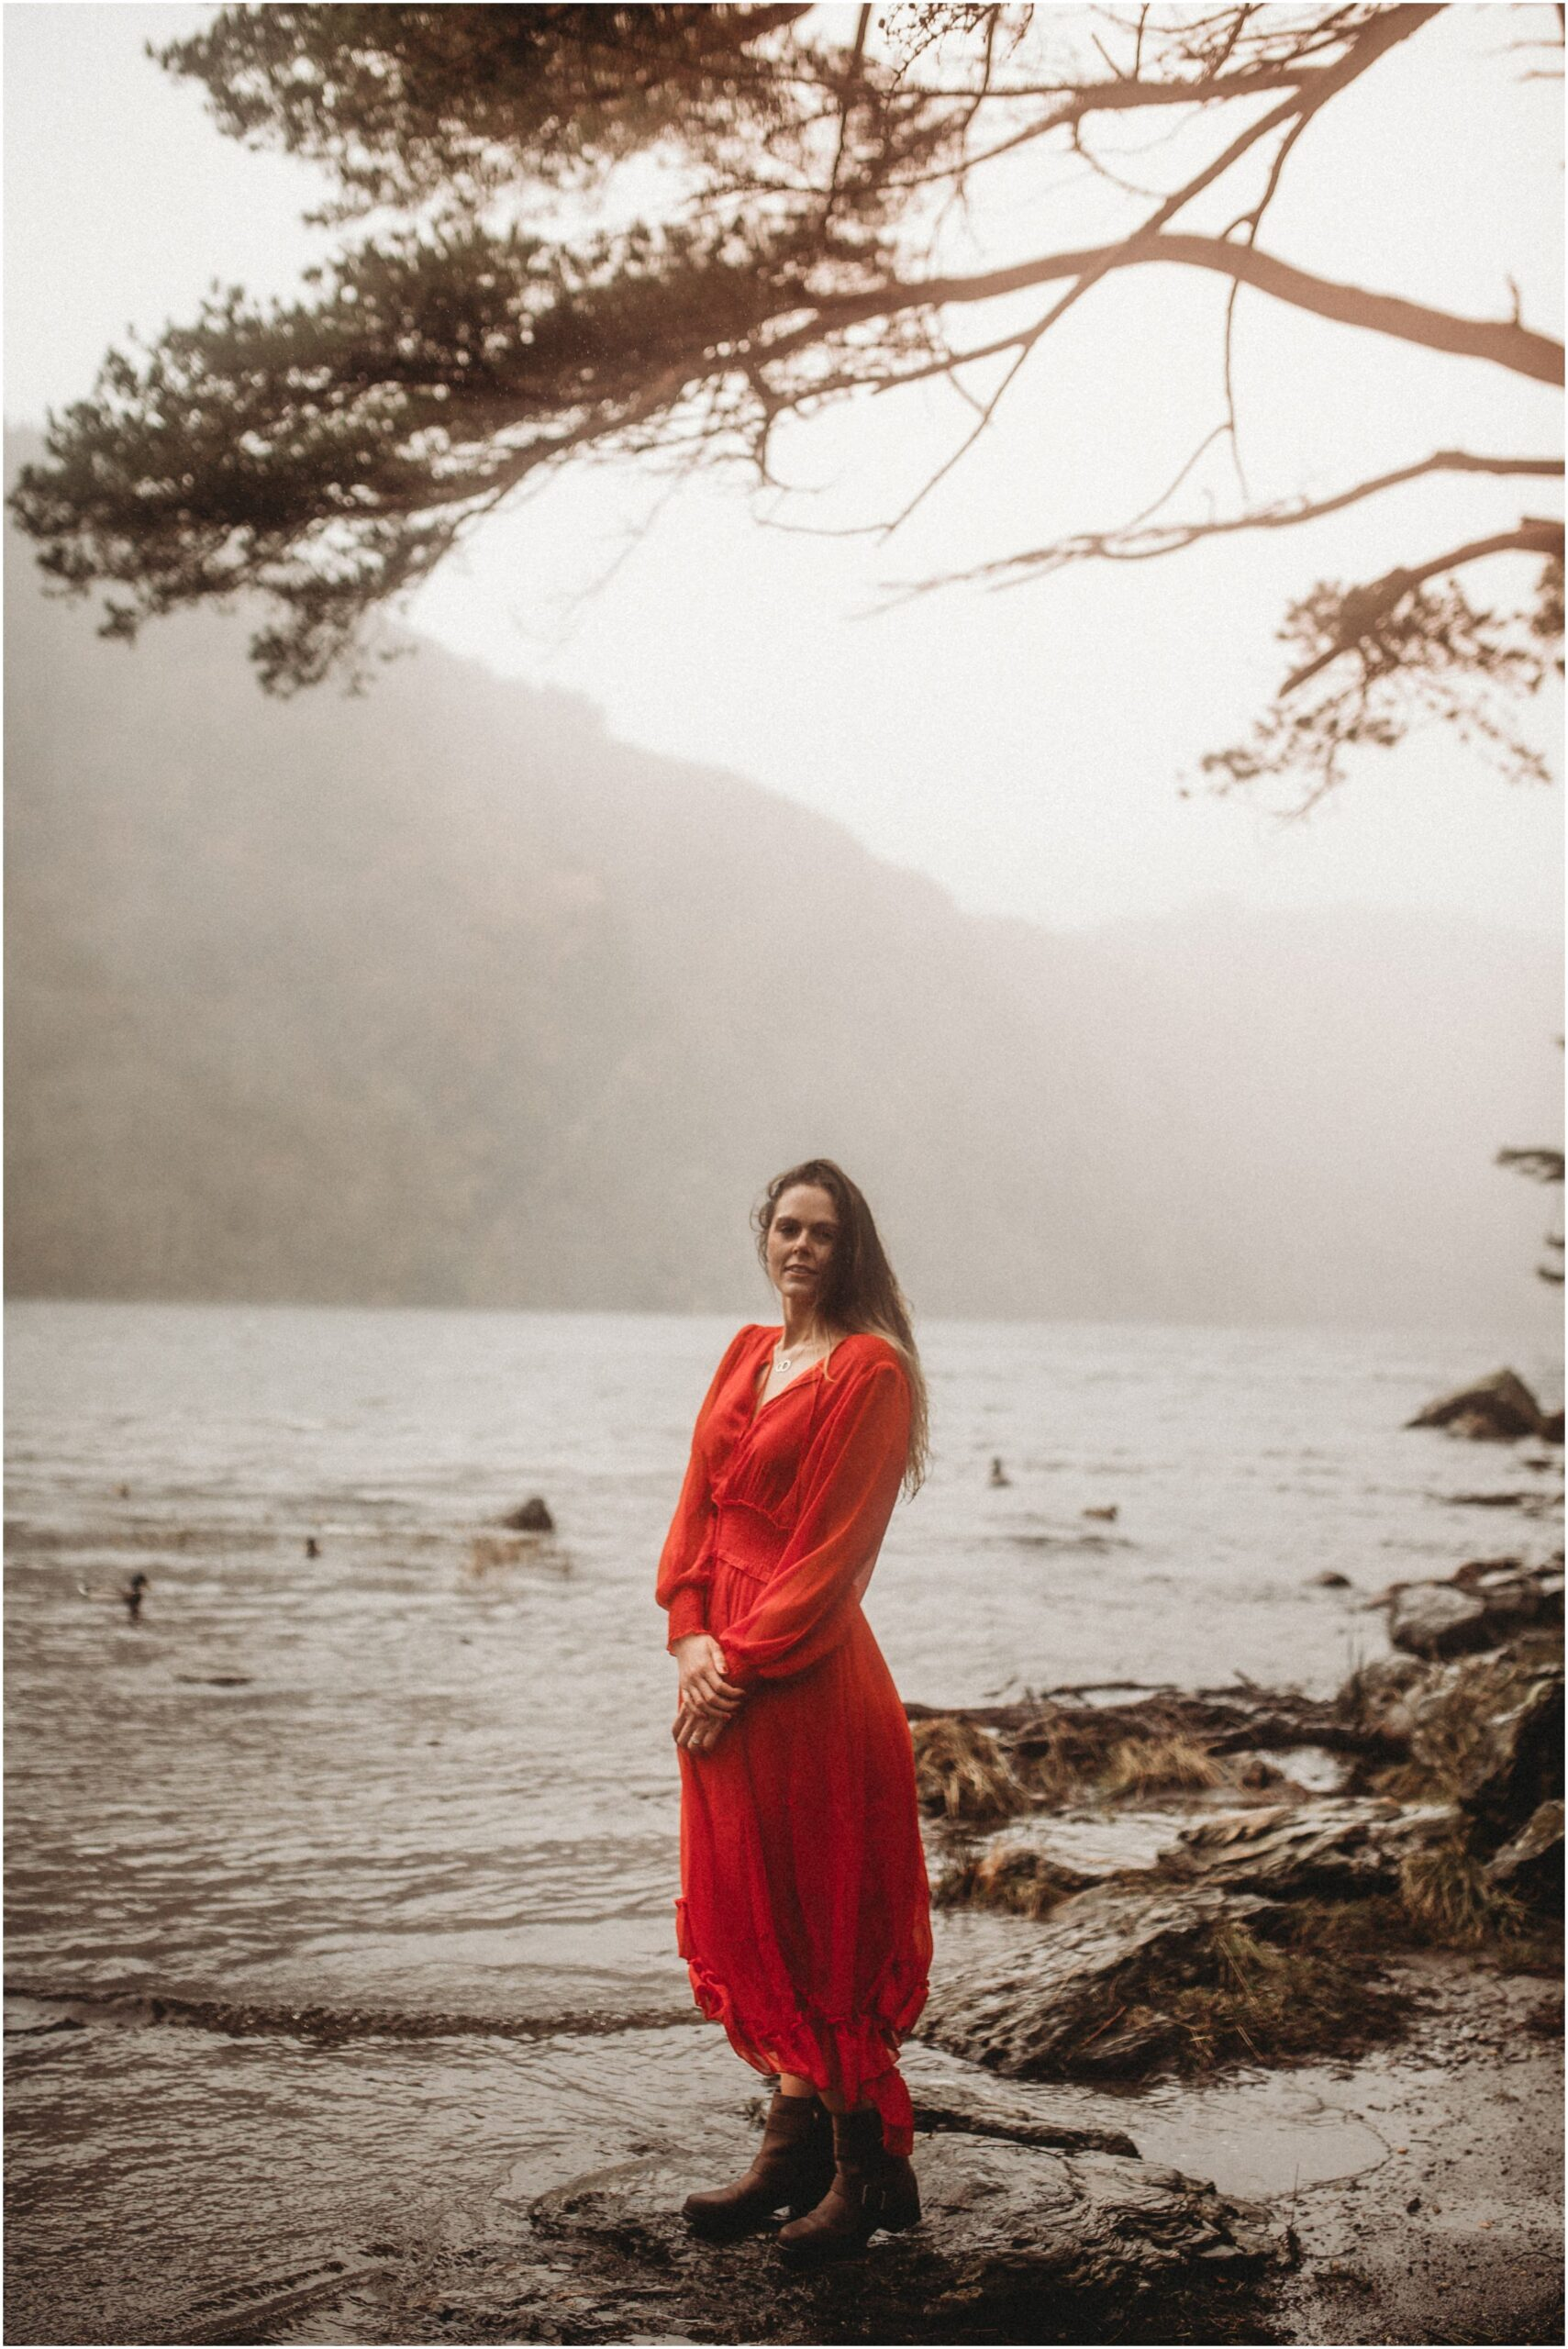 Johnny Corcoran Photography glendalough wicklow prewedding 0013 scaled - Fun and Relaxed wedding and elopement photography in Ireland, perfect for adventurous and outdoorsy couples